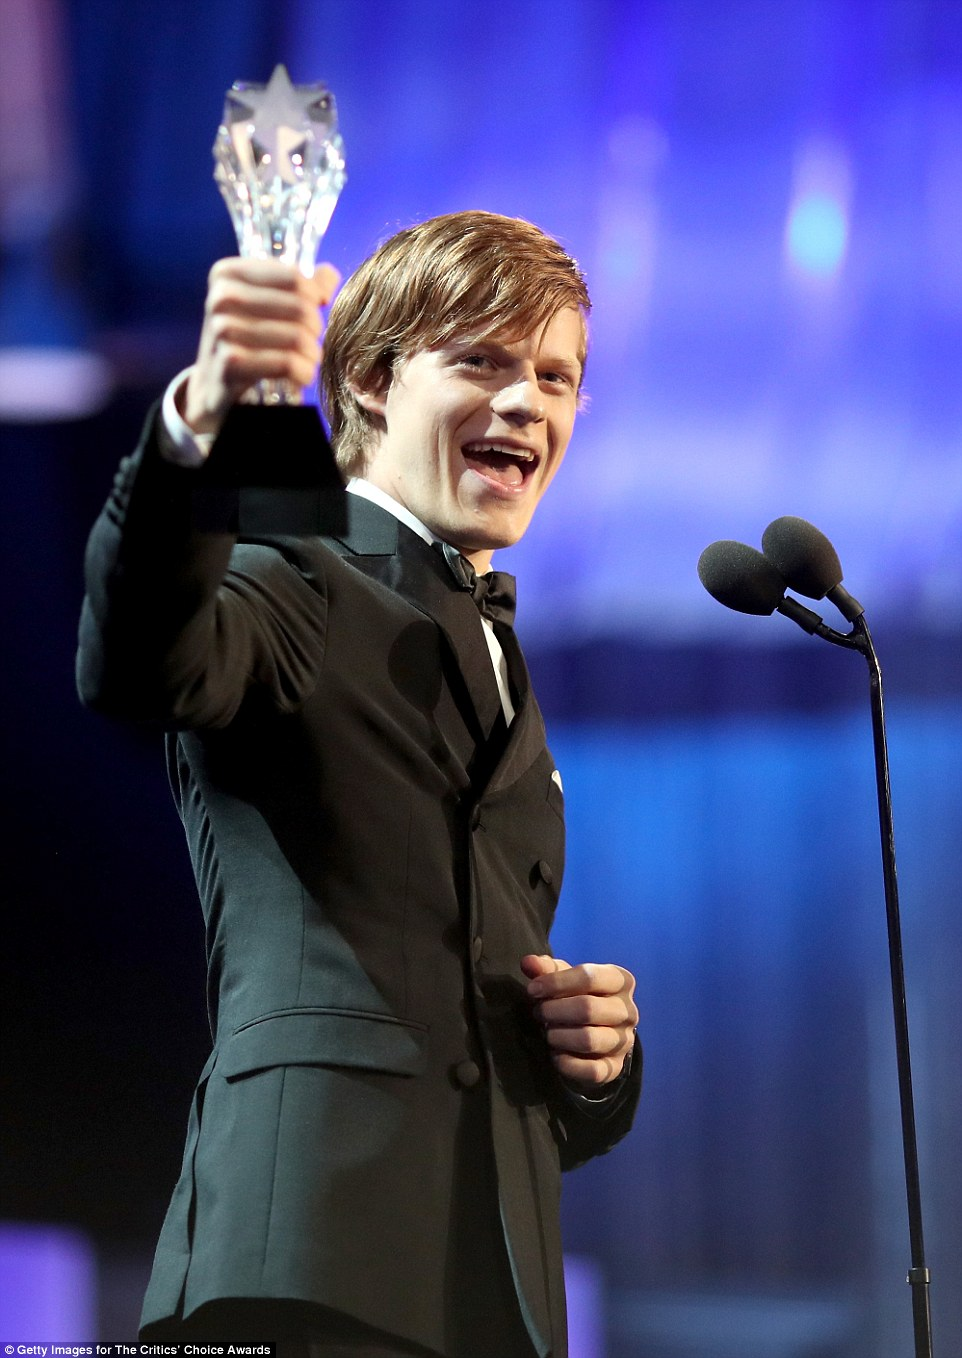 Quite the future ahead of him:Lucas Hedges accepted the Best Younger Actor award